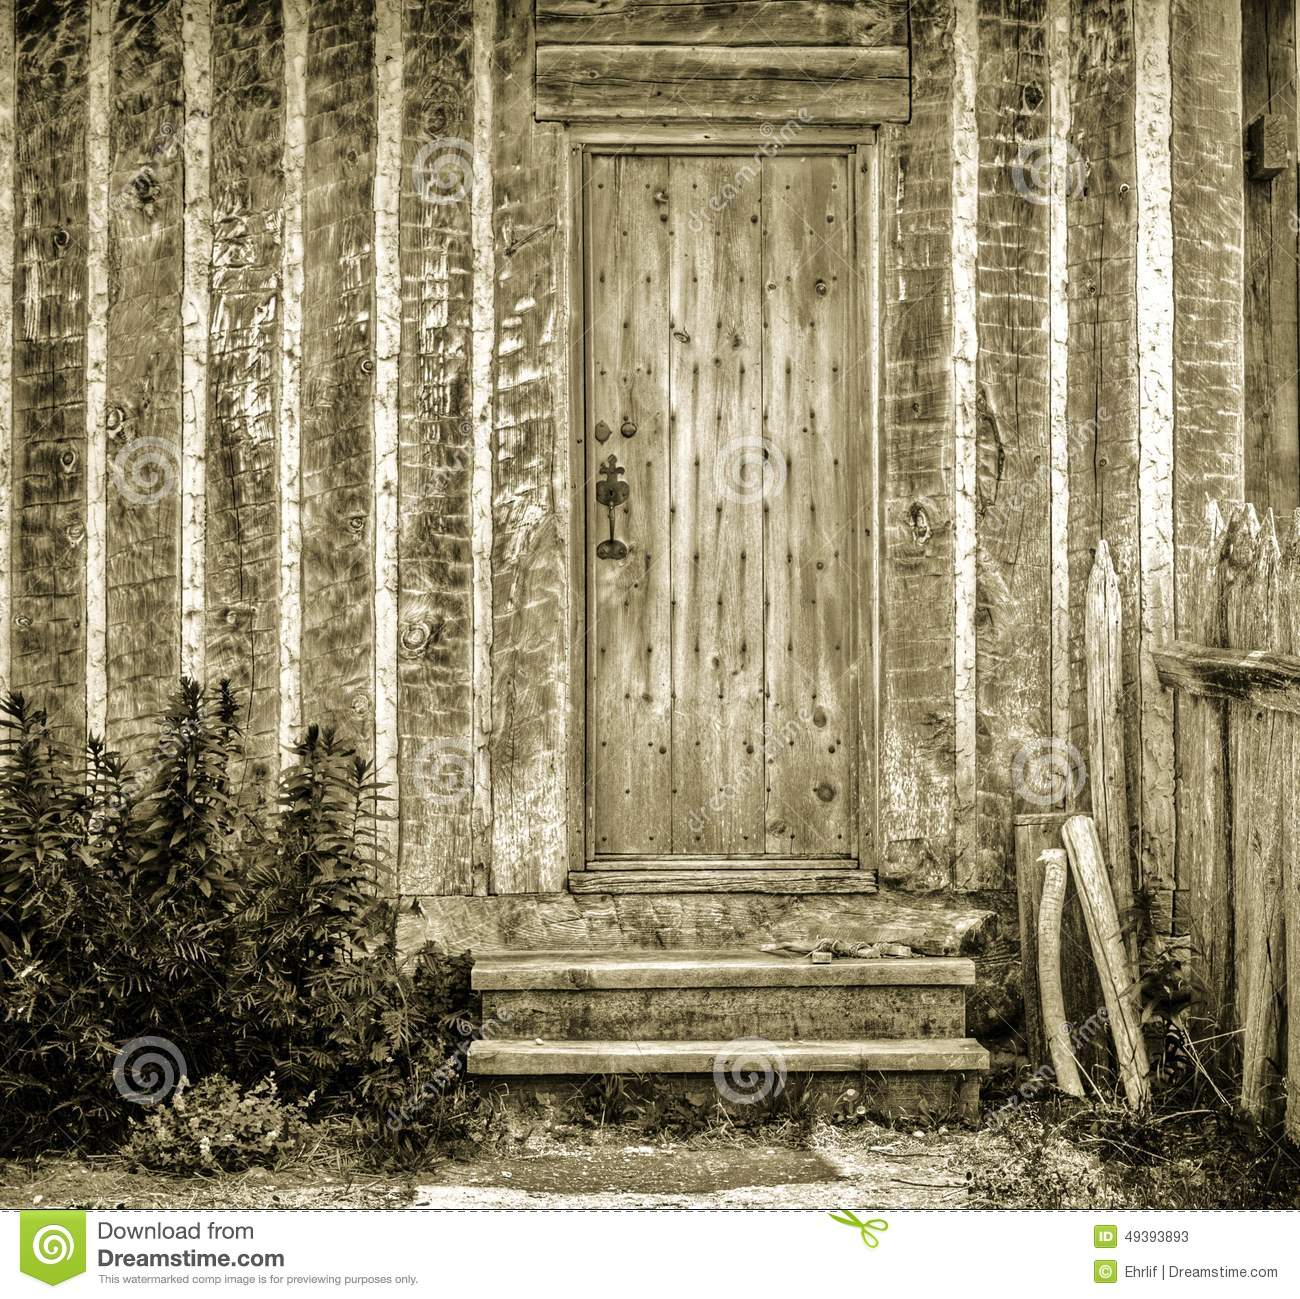 1299 #85A922 Front Door And Stoop Of Historical European Style Cottage. pic European Exterior Doors 46111300